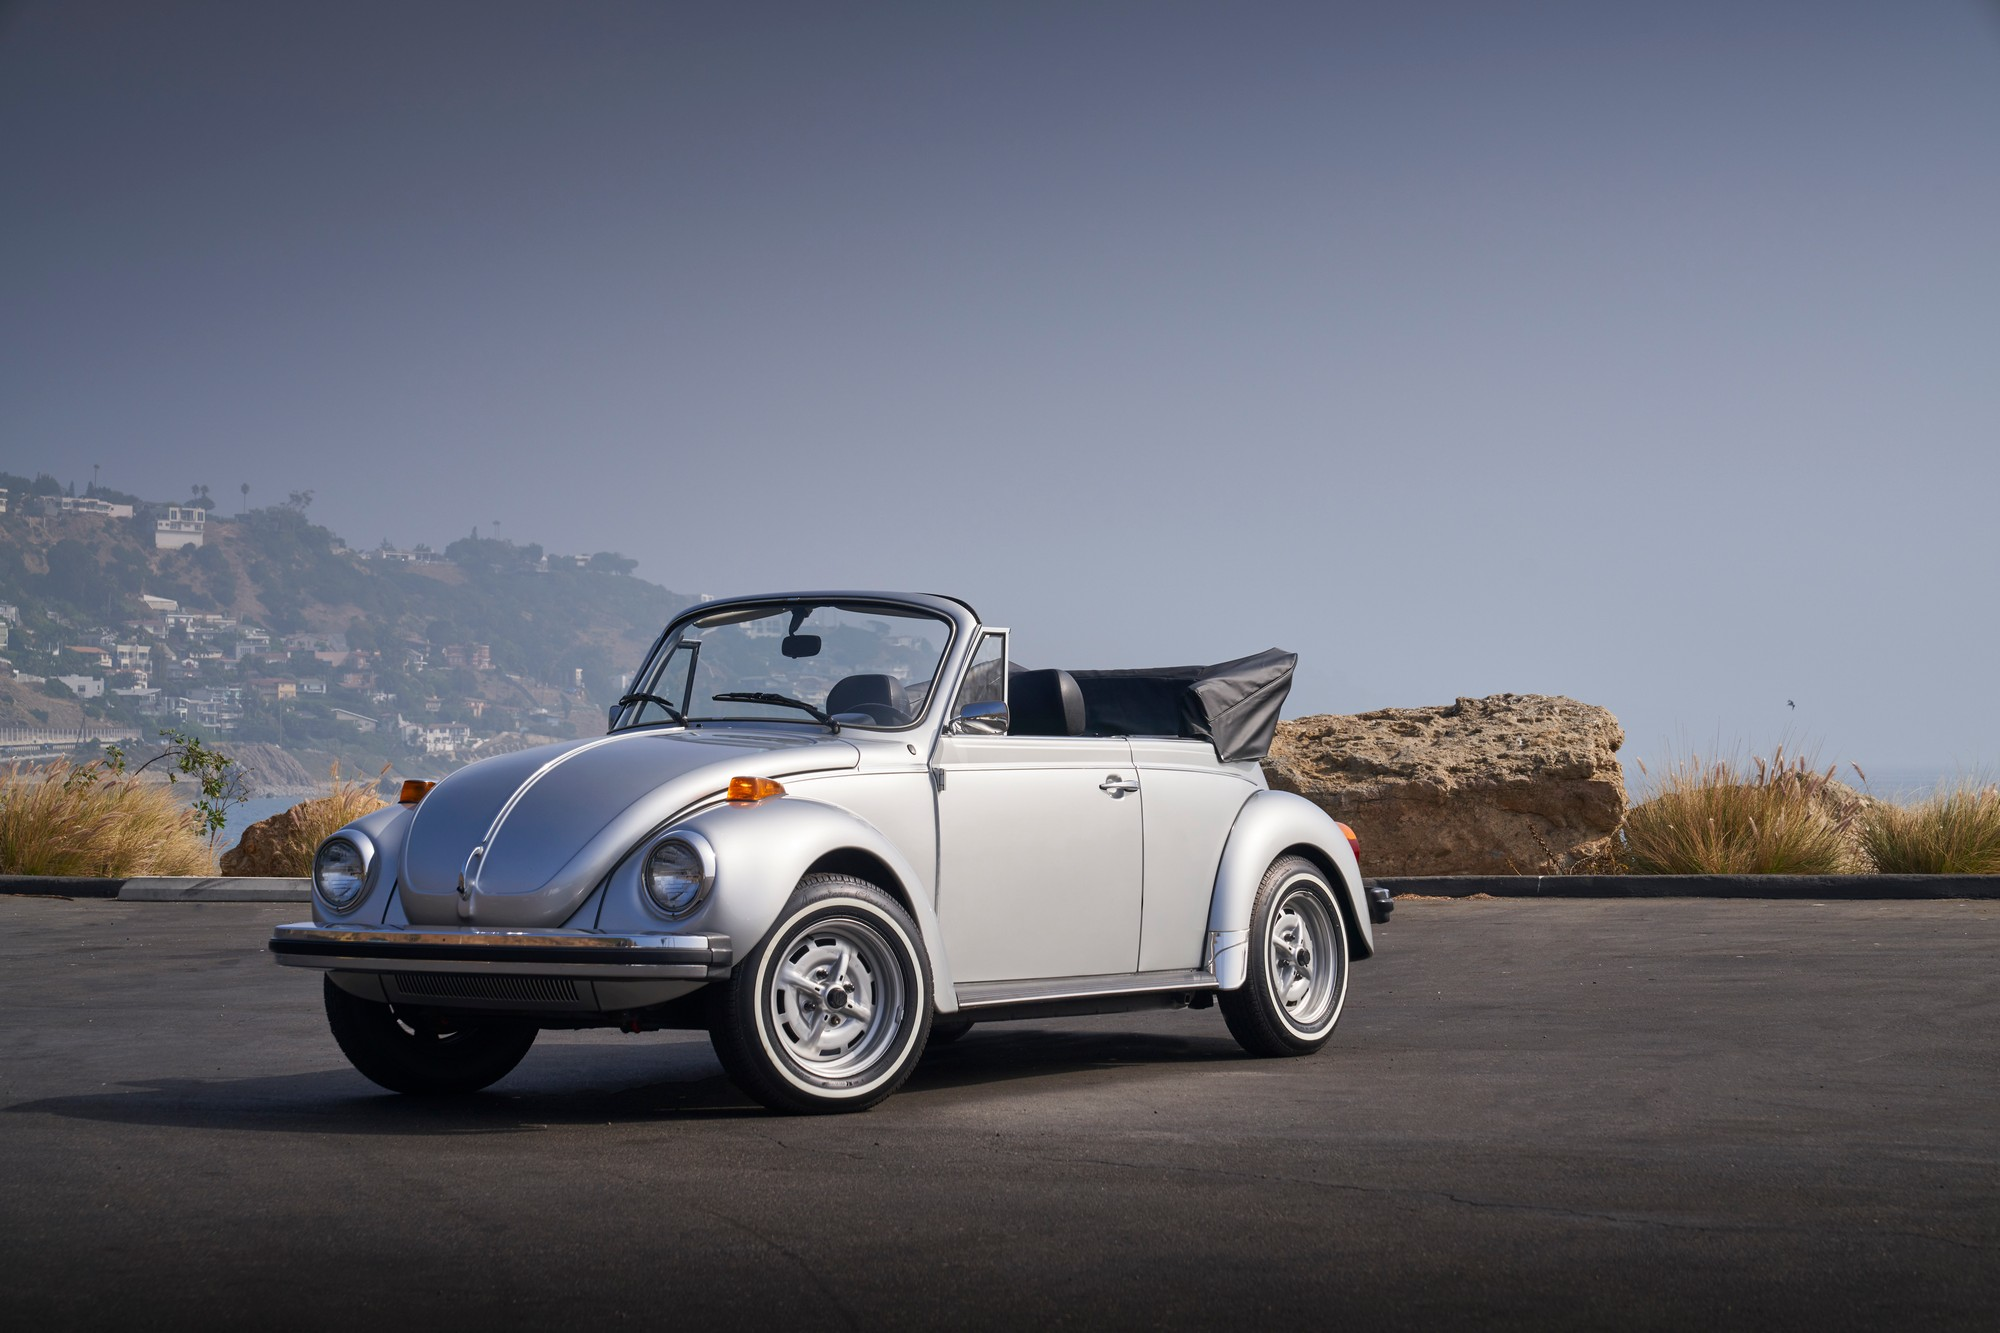 1979_Super_Beetle-Large-10611